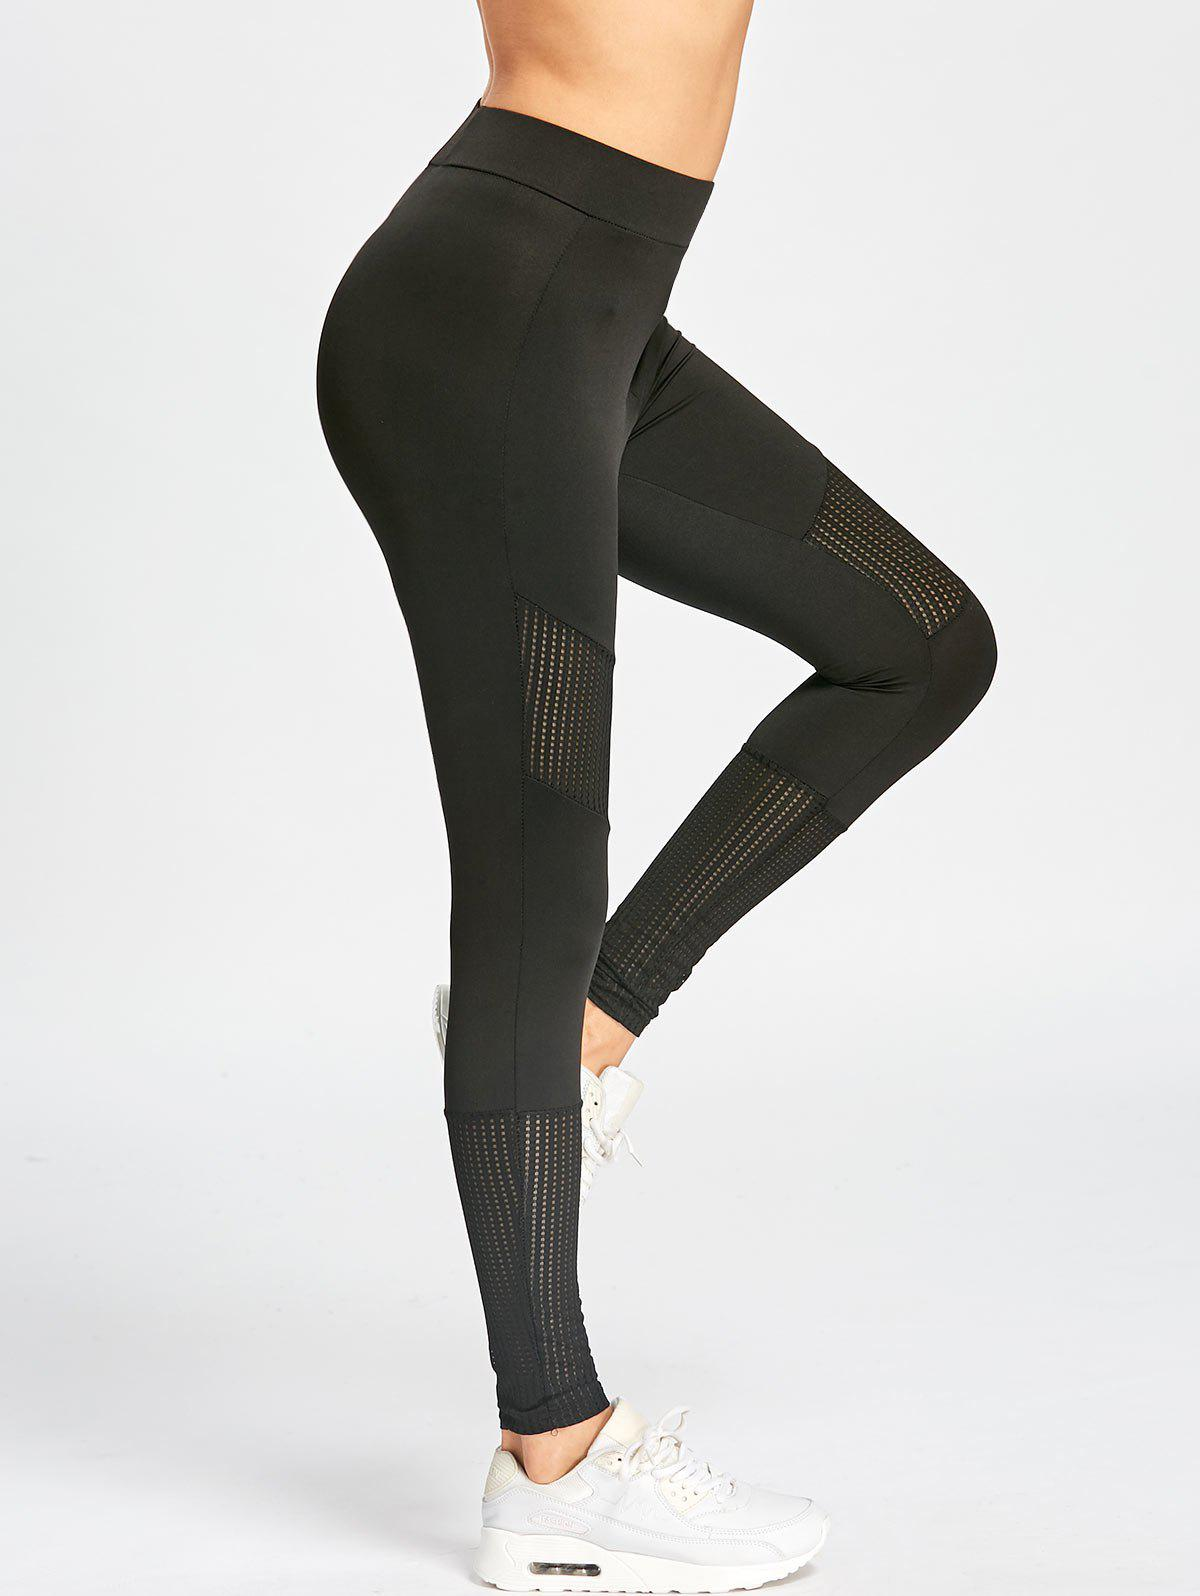 High Waisted Skinny Sport LeggingsWOMEN<br><br>Size: XL; Color: BLACK; Style: Casual; Material: Cotton,Polyester; Waist Type: High; Pattern Type: Solid; Weight: 0.3500kg; Package Contents: 1 x Leggings;